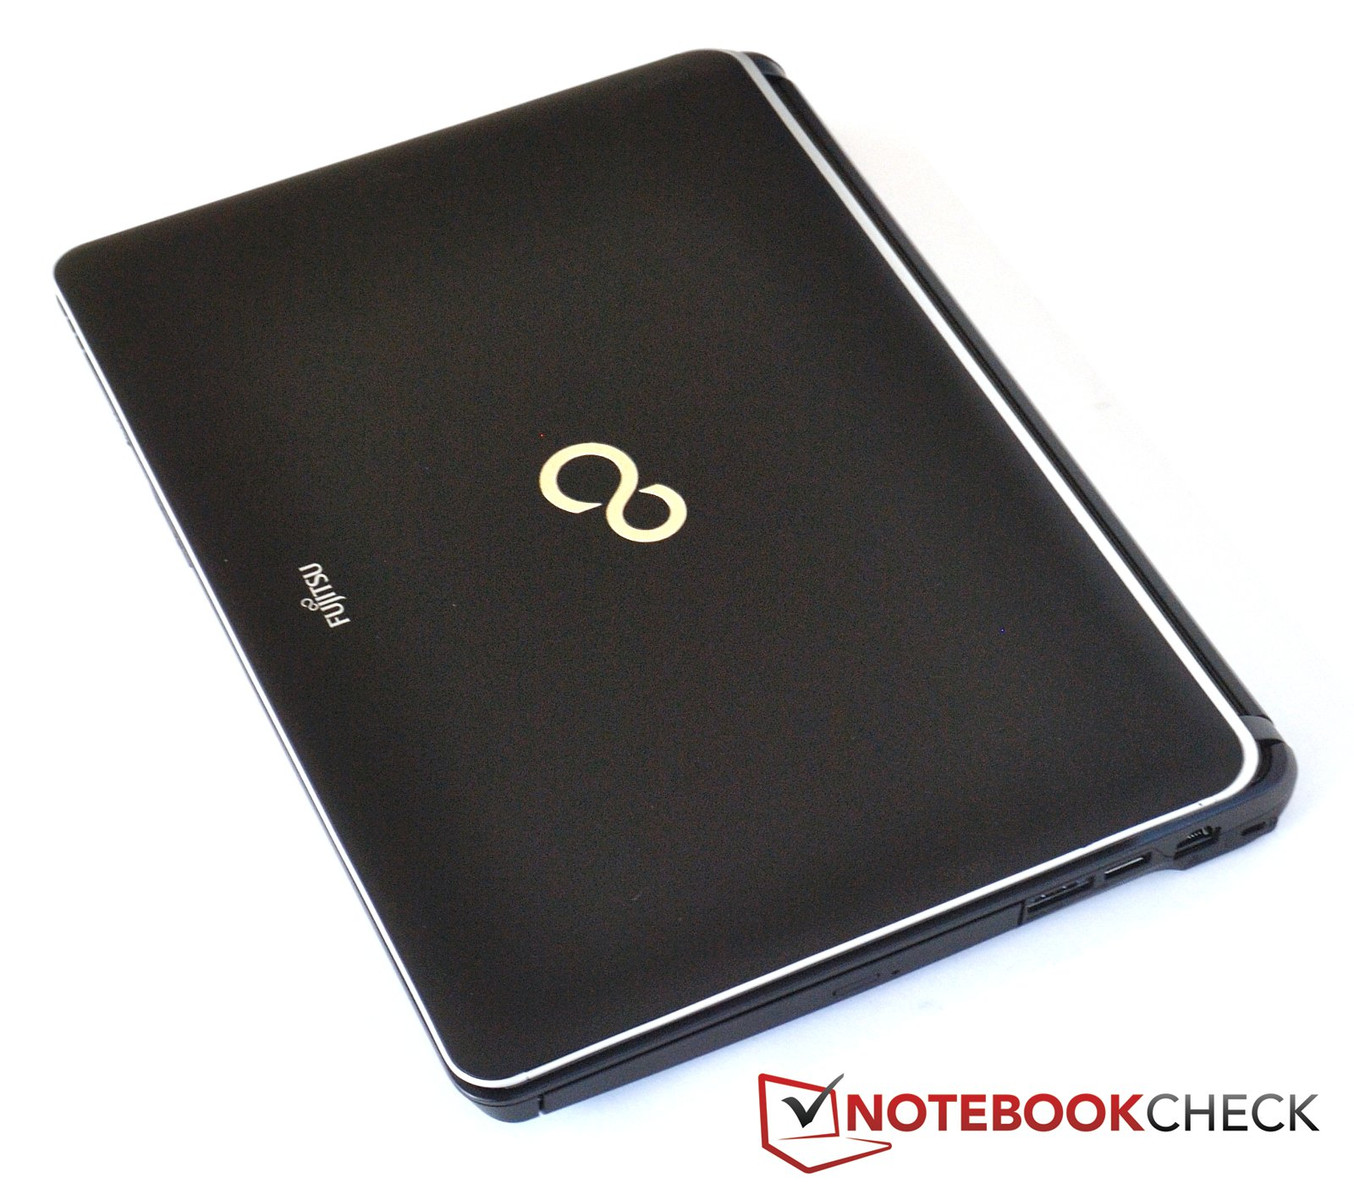 The Lifebook LH531 And The AH531